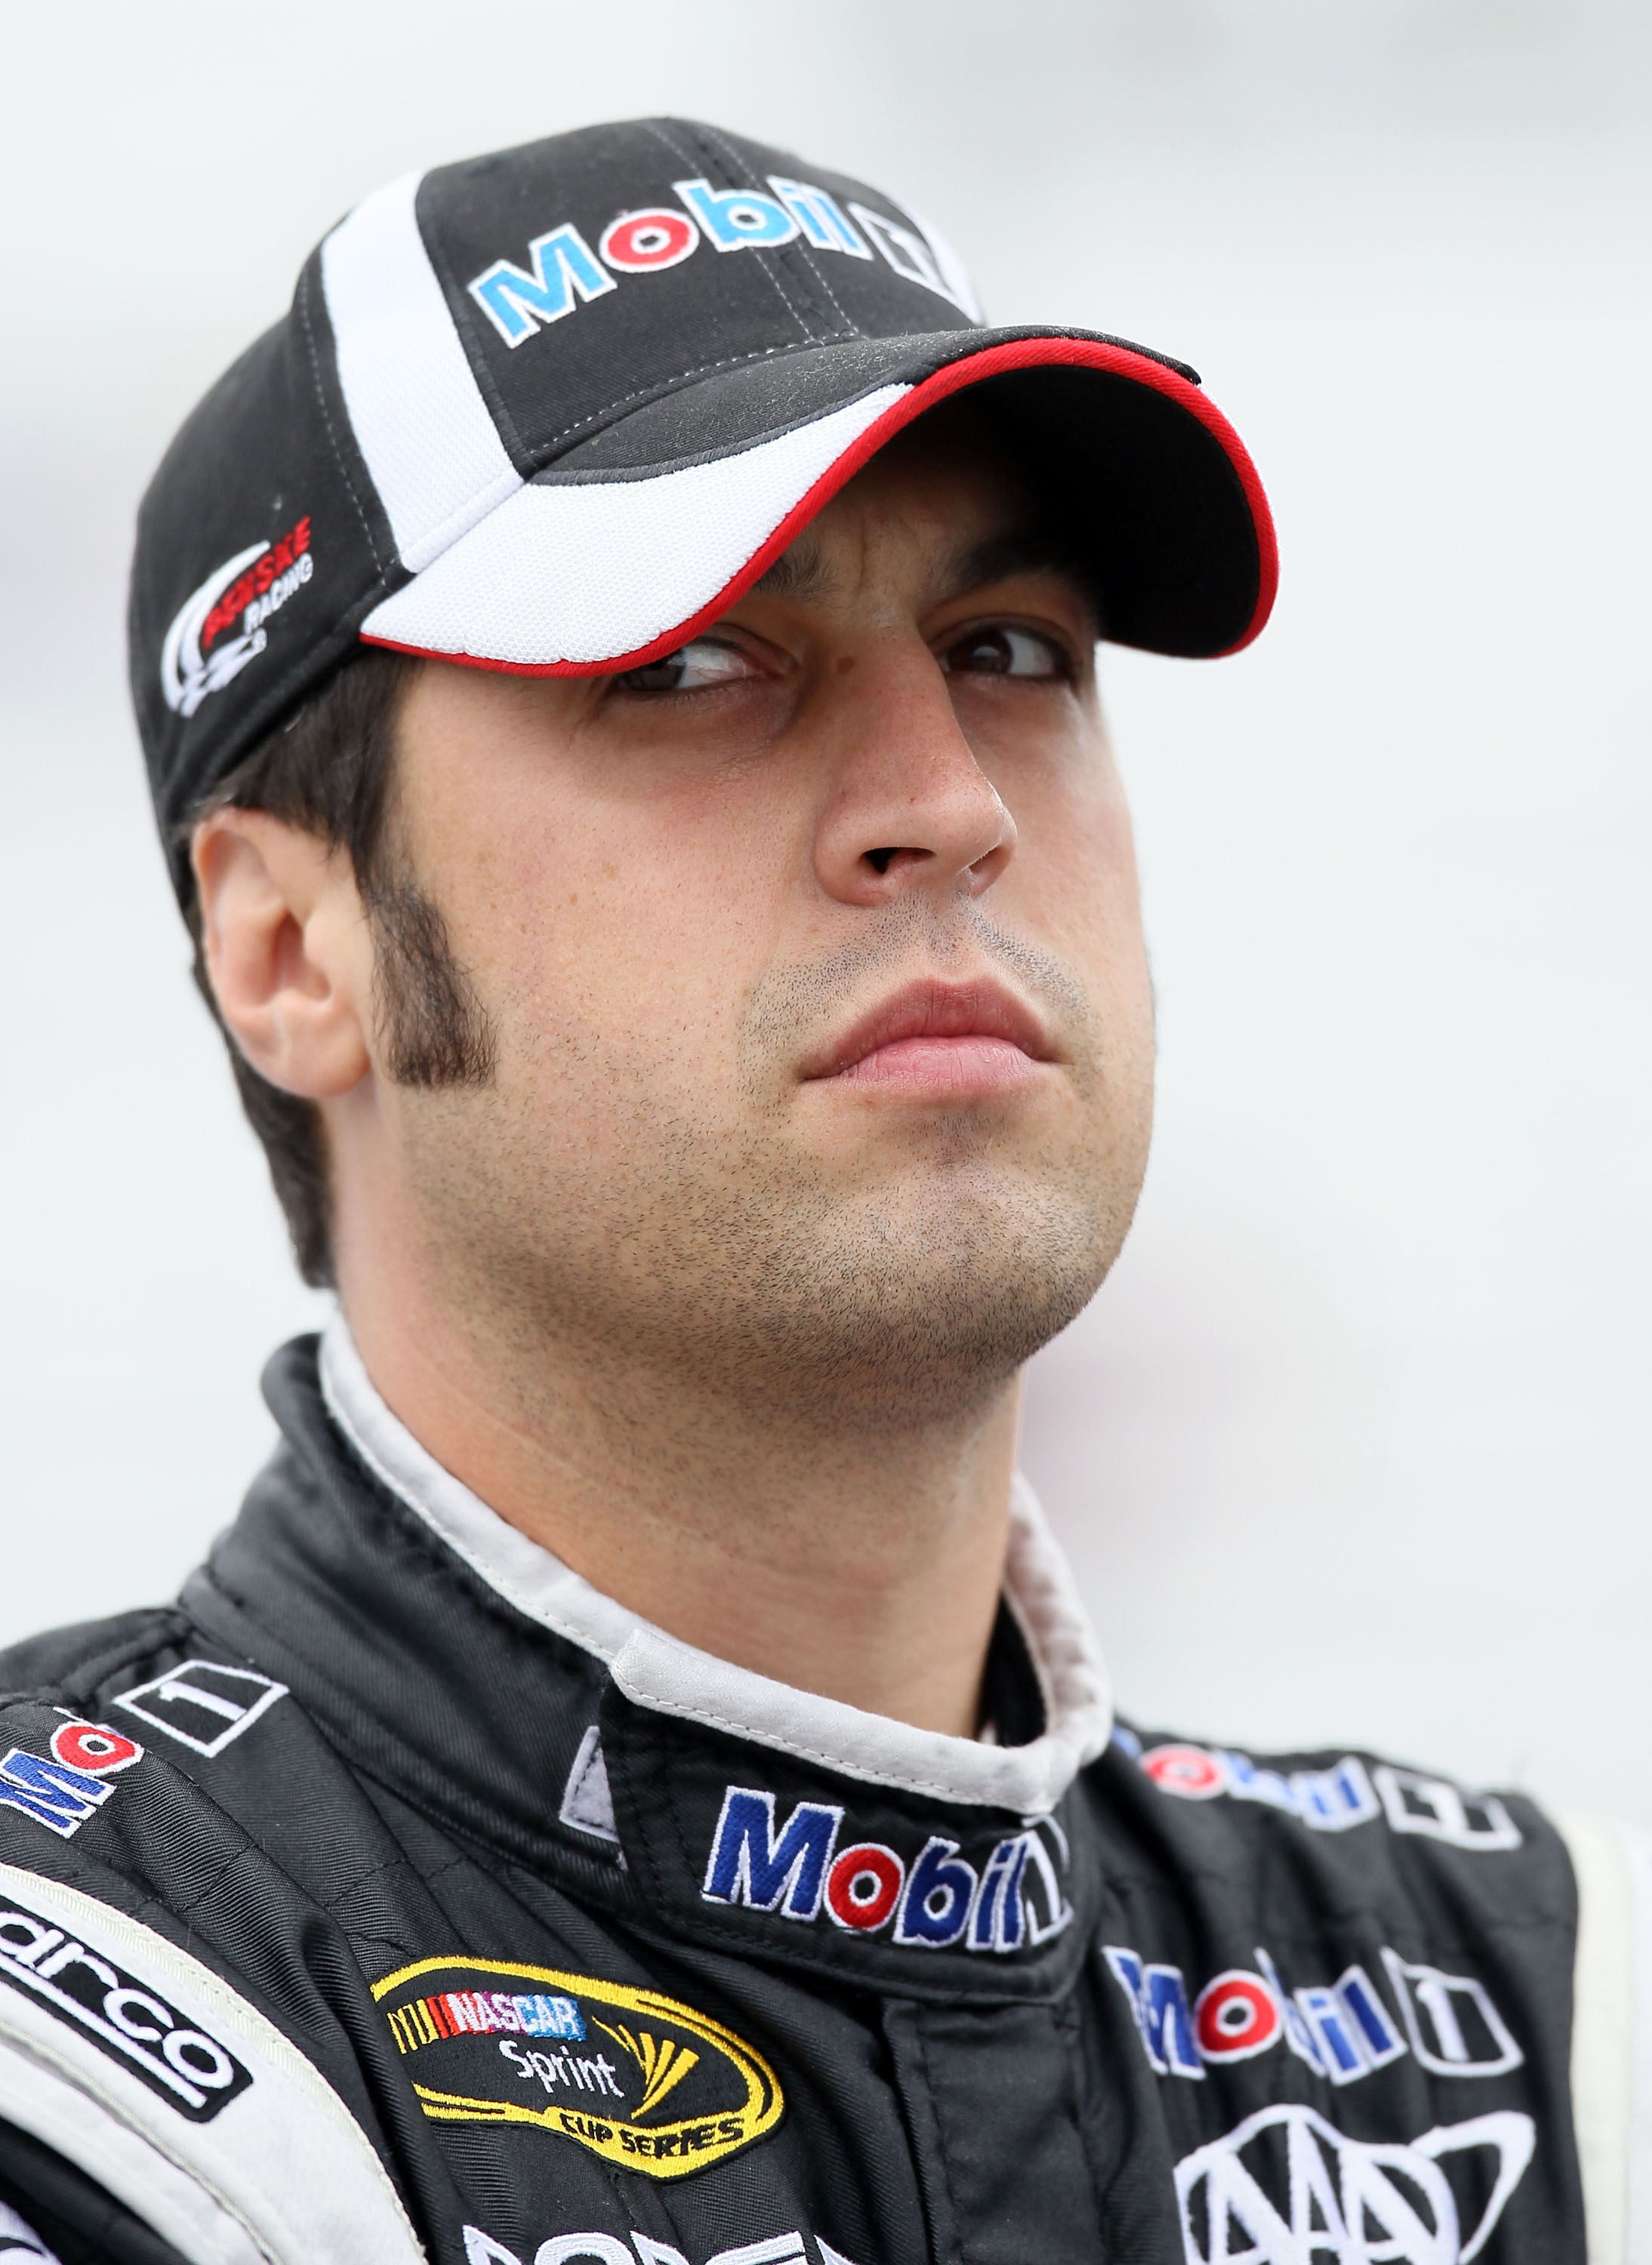 Sam Hornish Jr. may return to Penske next season, albeit at the Nationwide level.